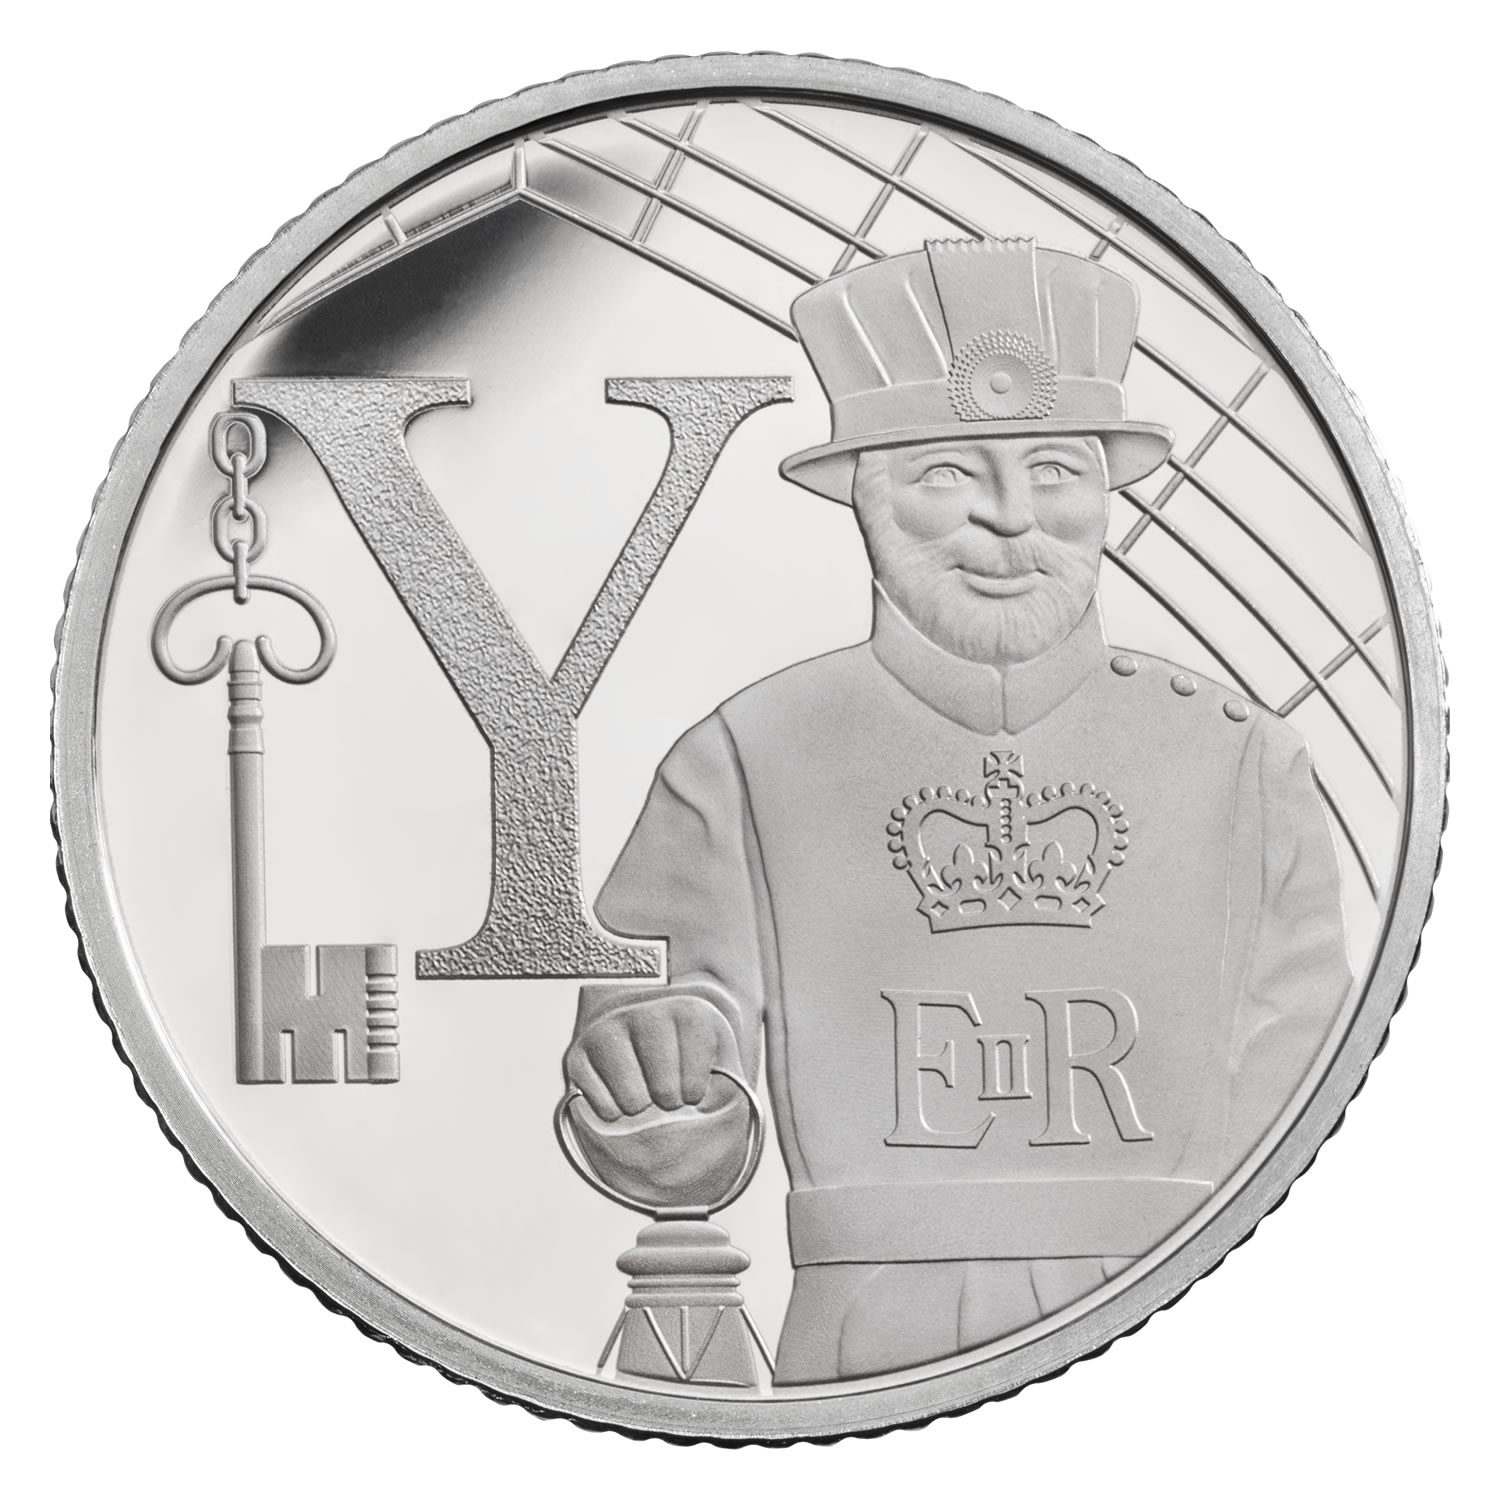 Y - Yeoman Warder 2018 UK 10p Silver Proof Coin